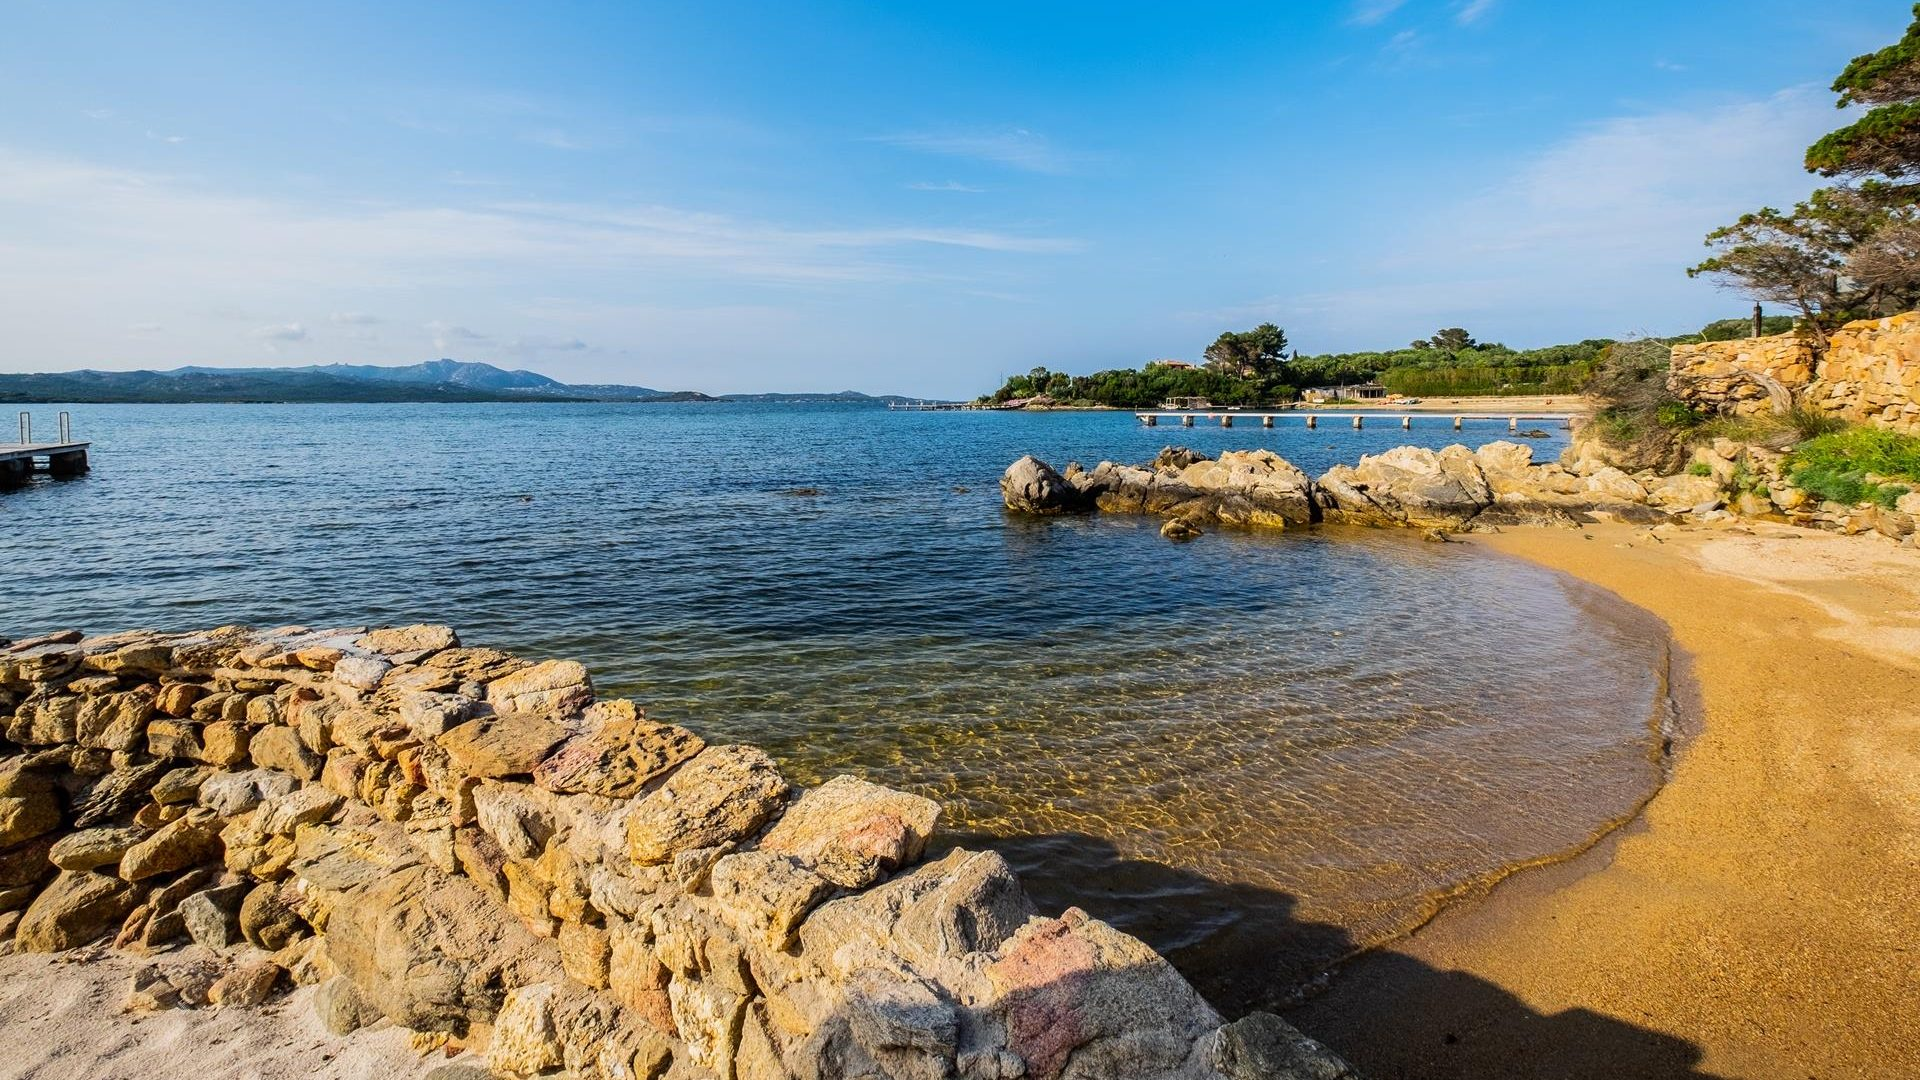 Direct access to the beach in Sardinia